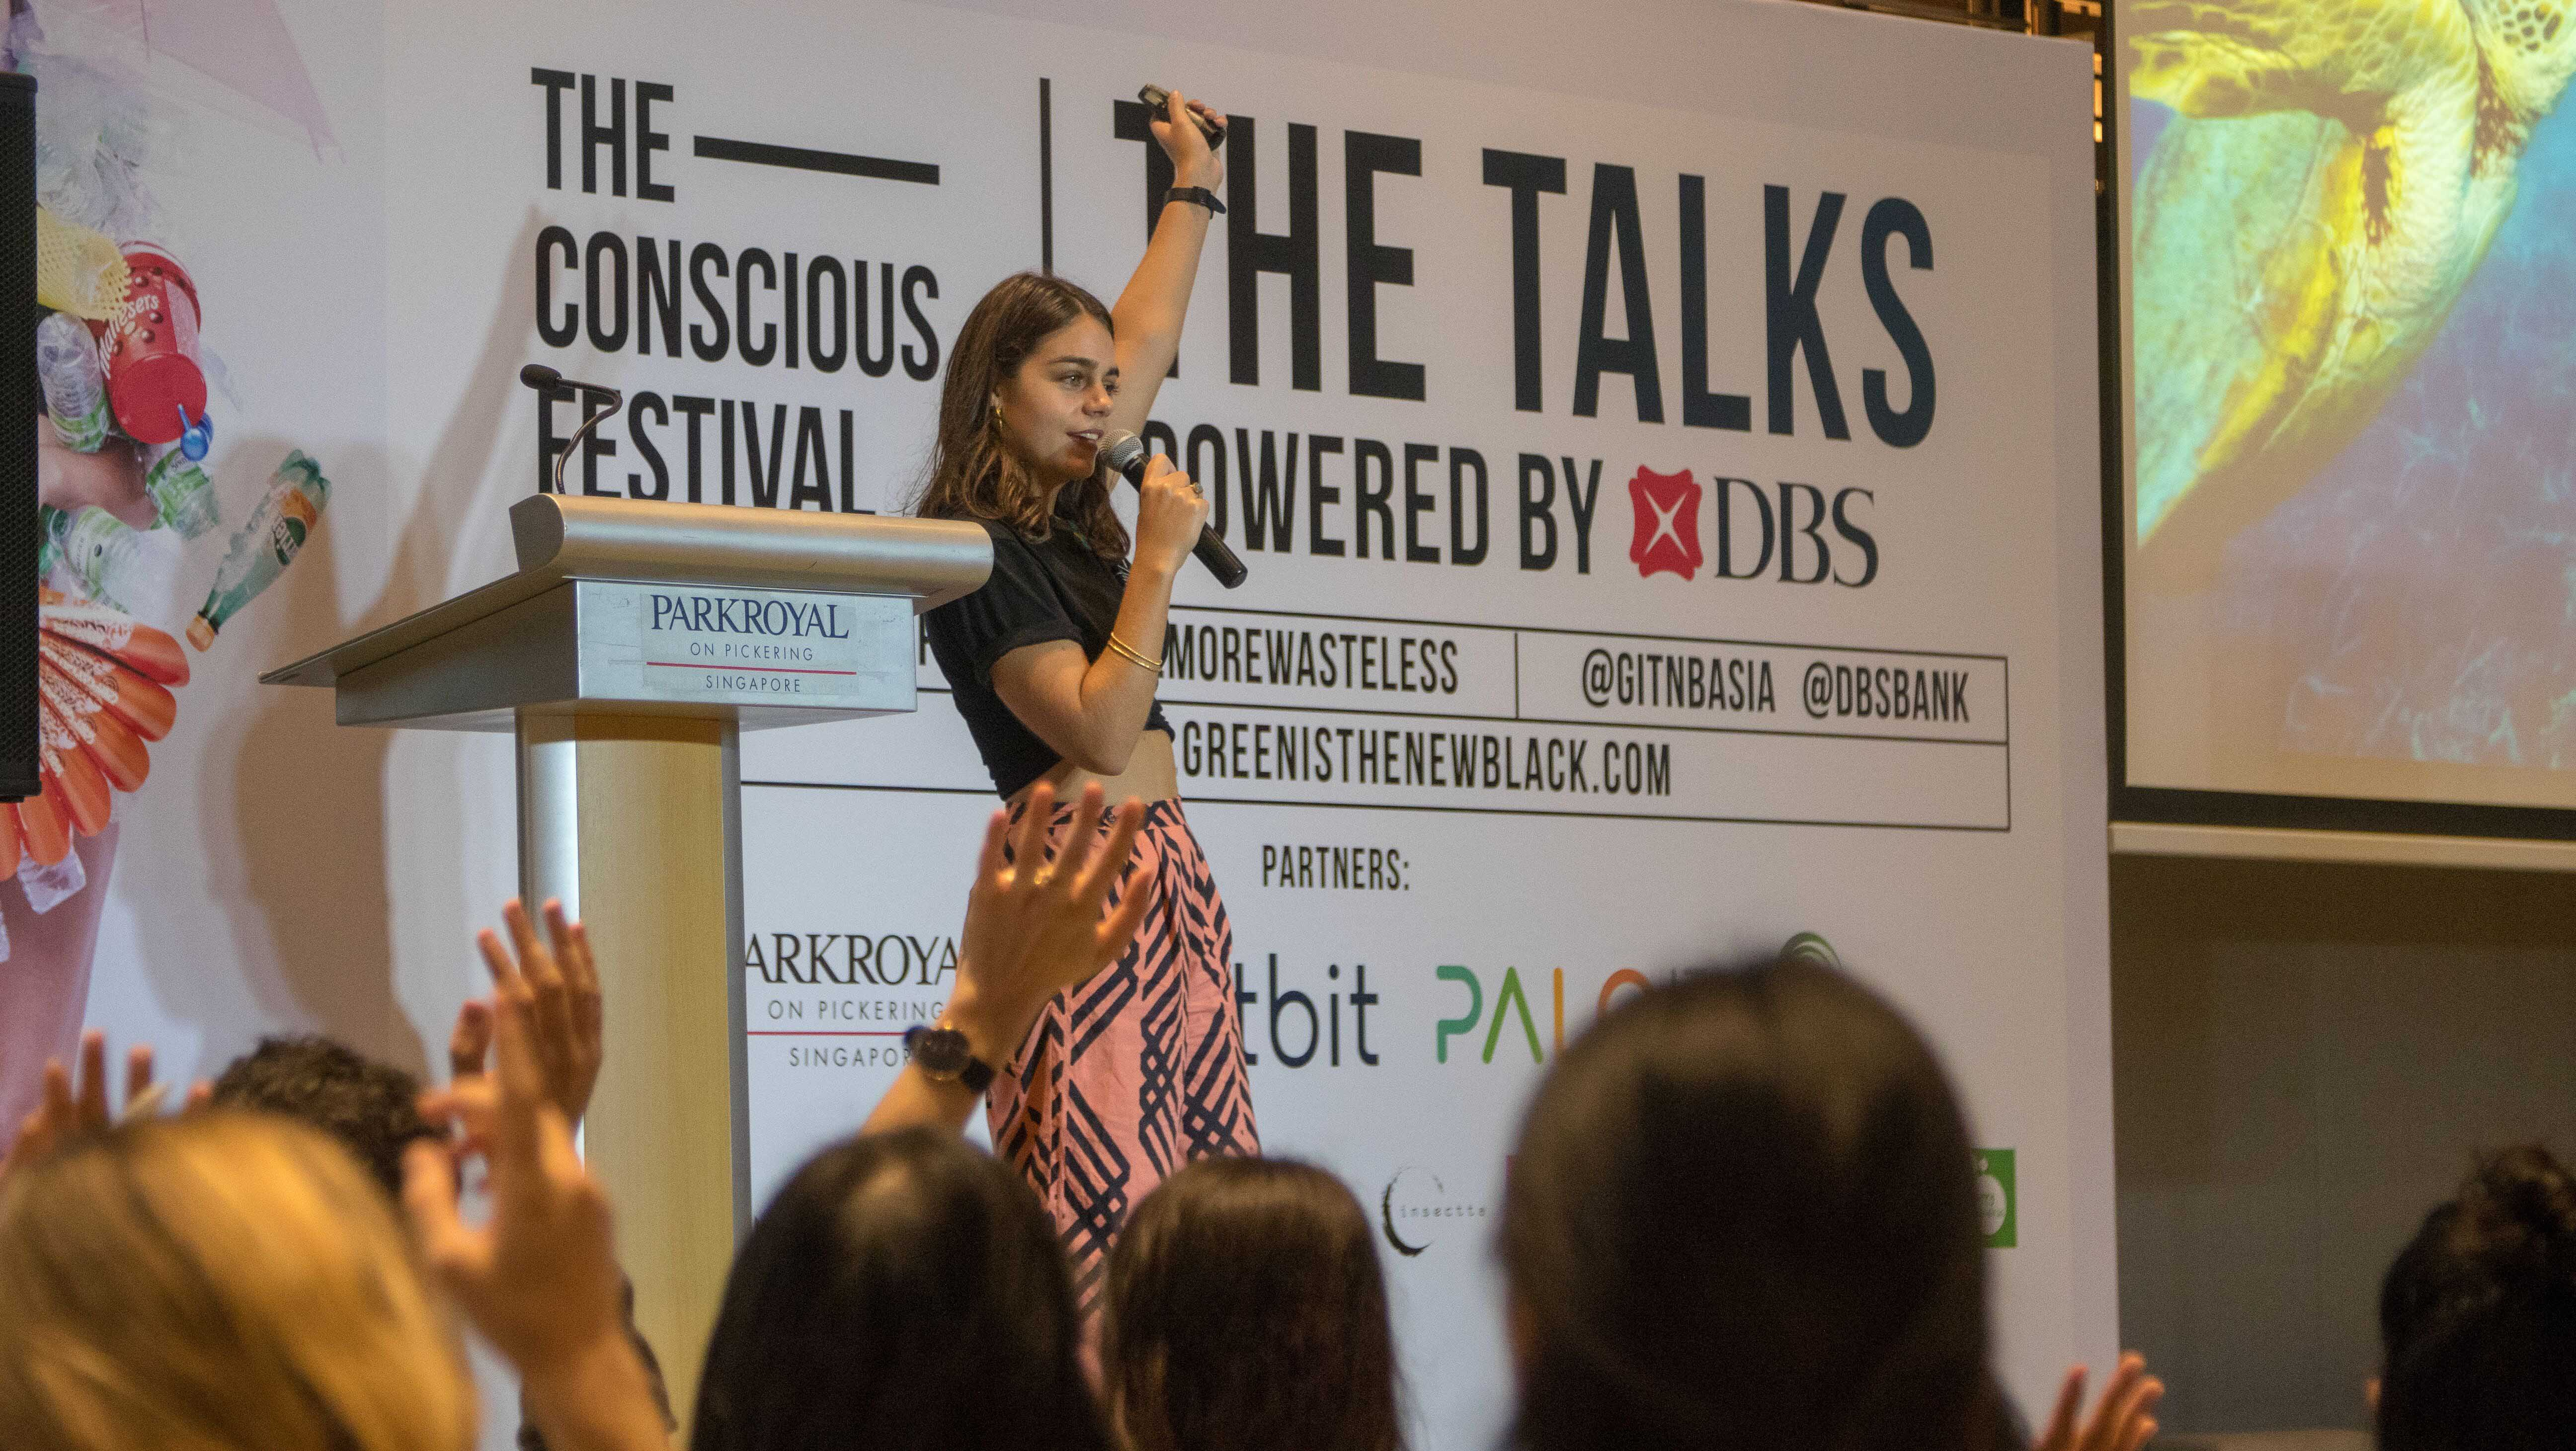 The Conscious Festival by Green Is The New Black is back because Climate Change is Real - Alvinology